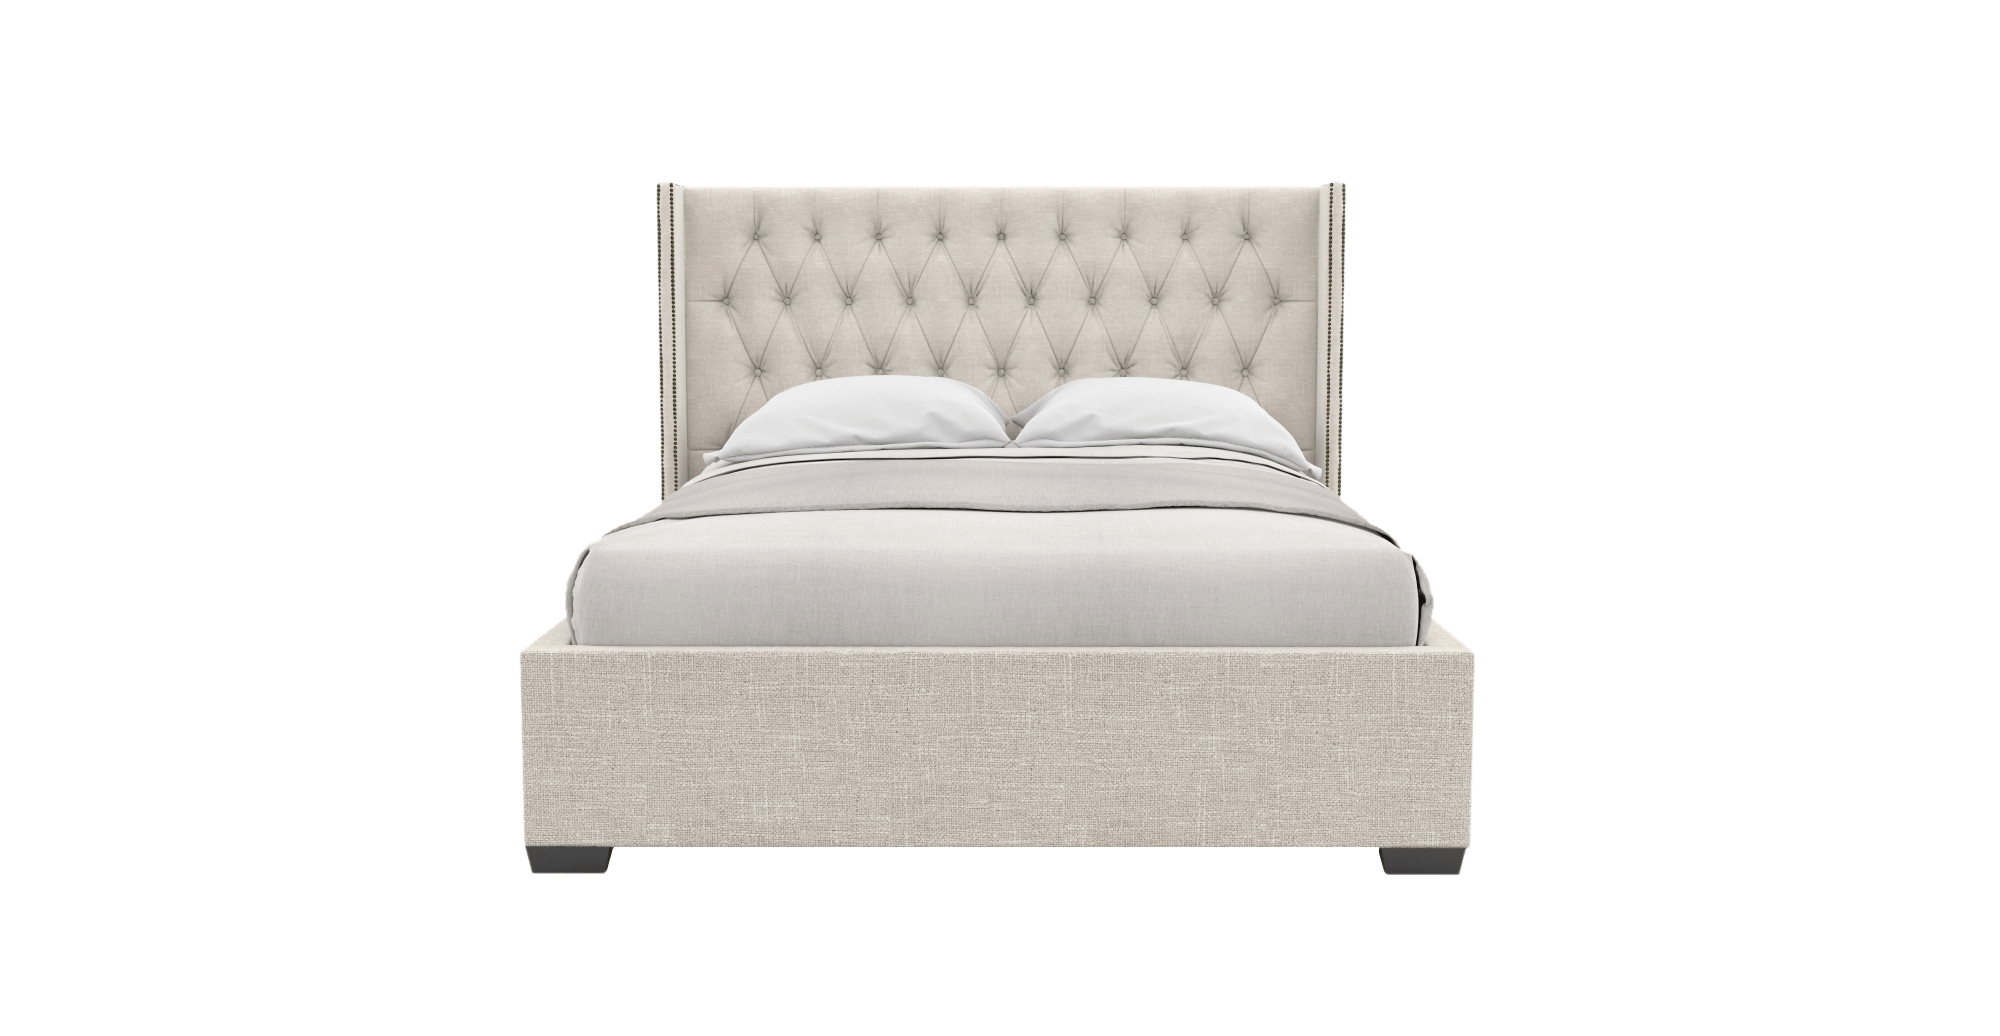 Buy A Bed Where To Buy Furniture In Melbourne Australia Home